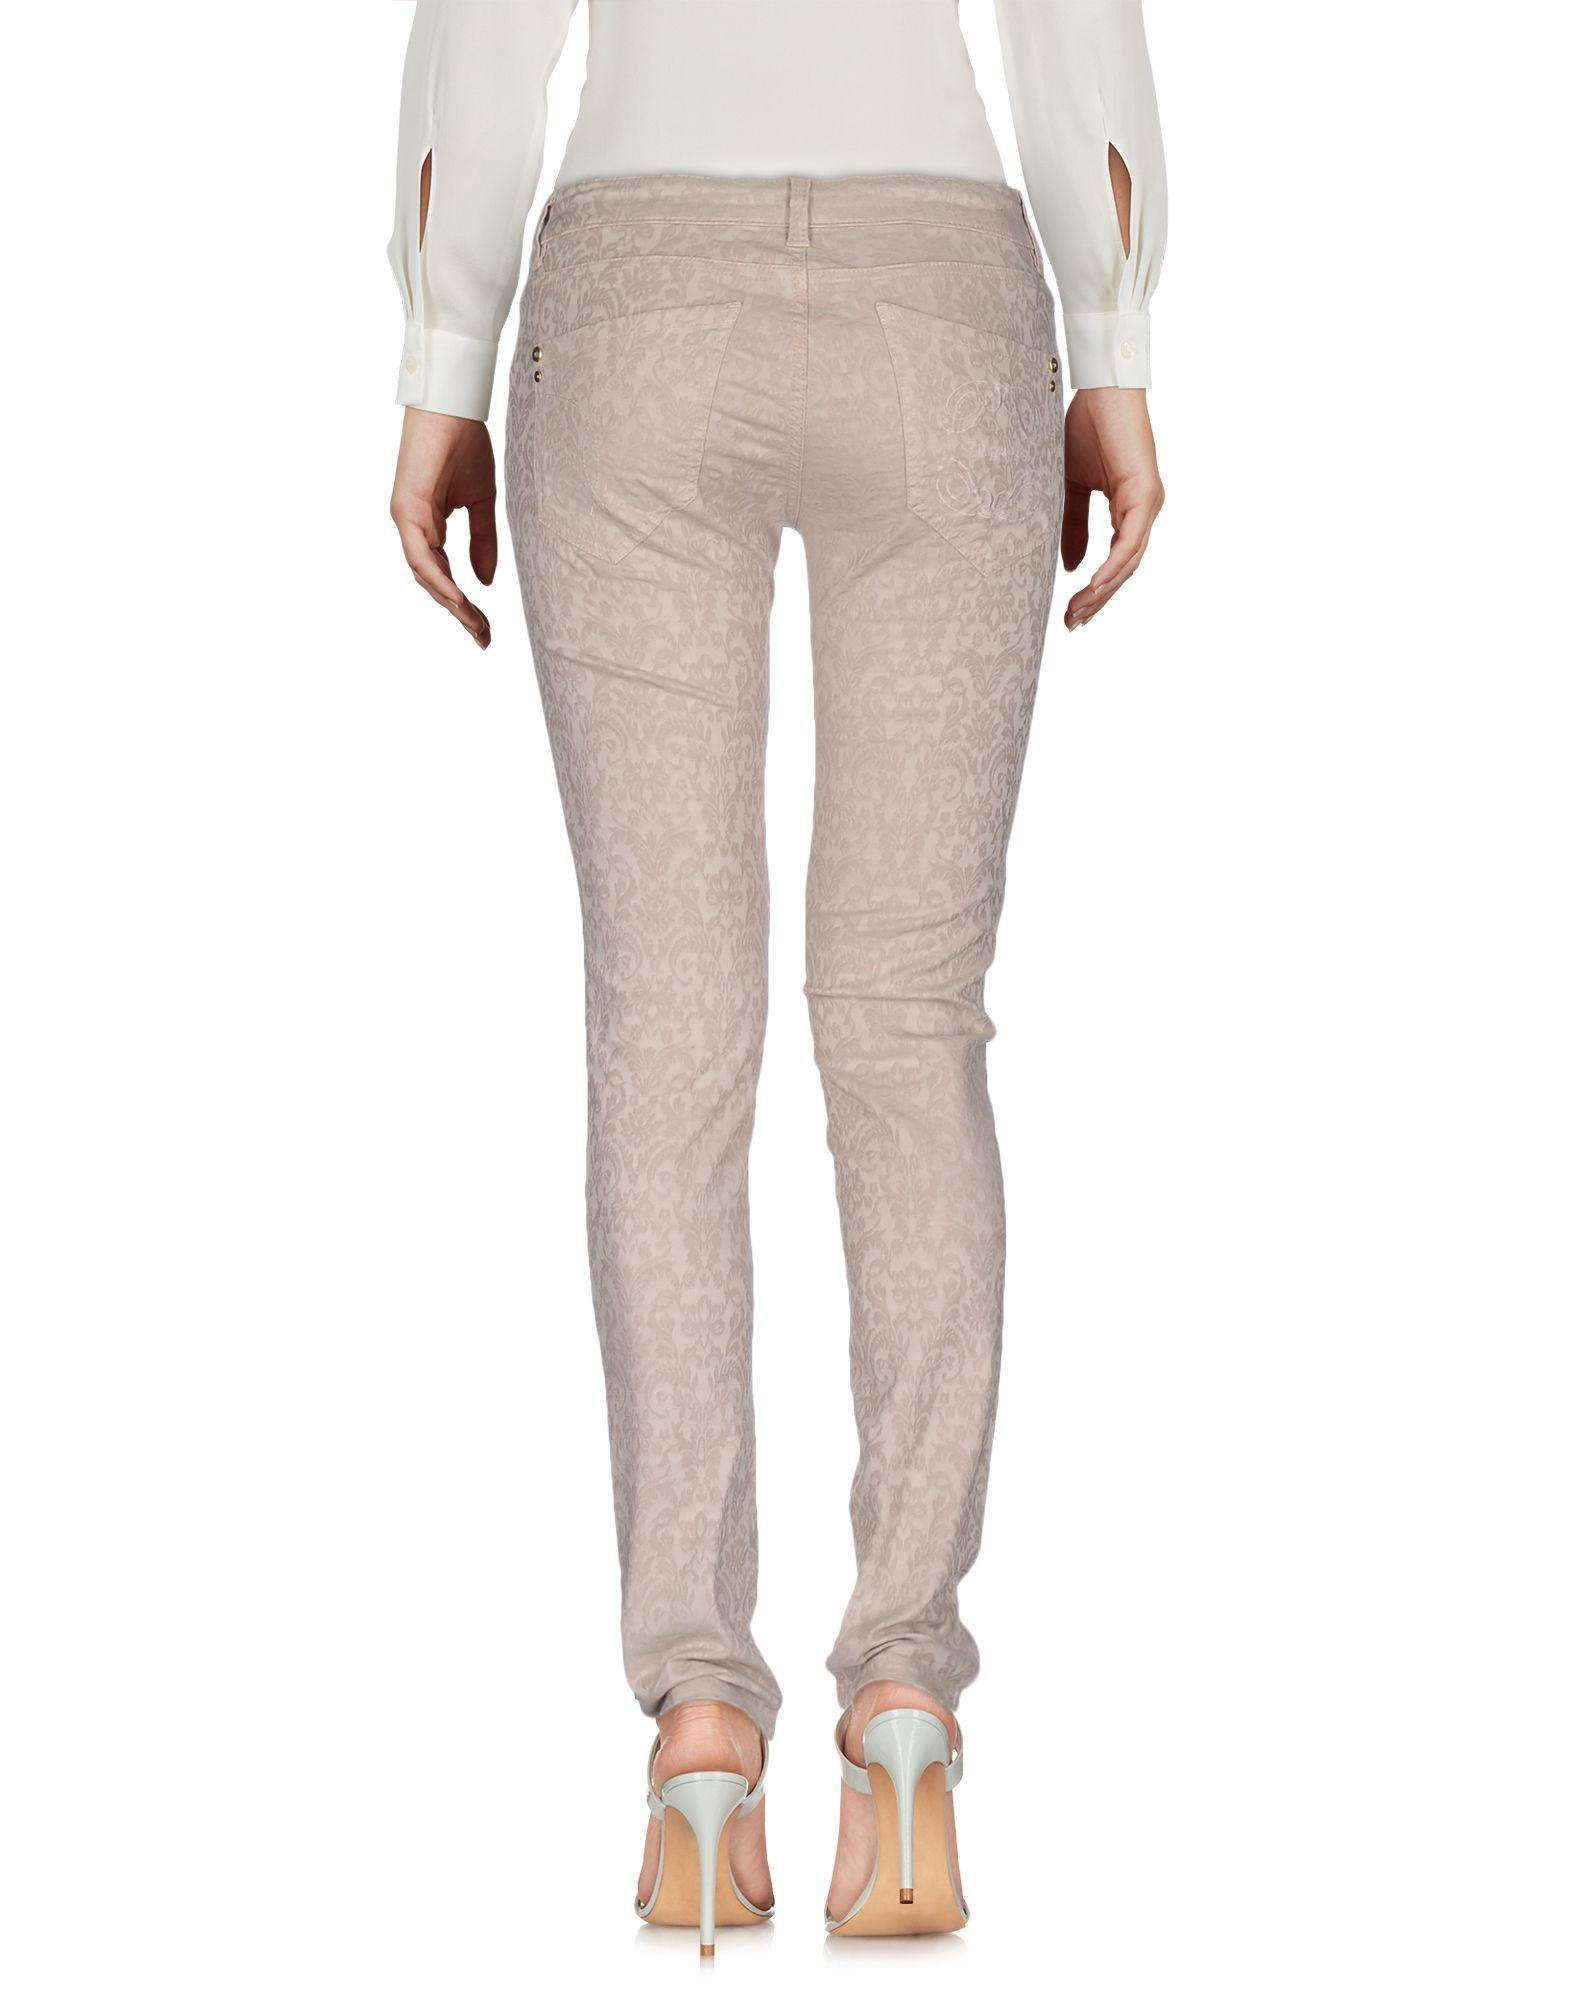 Pepe Jeans Cotton Casual Pants in Grey